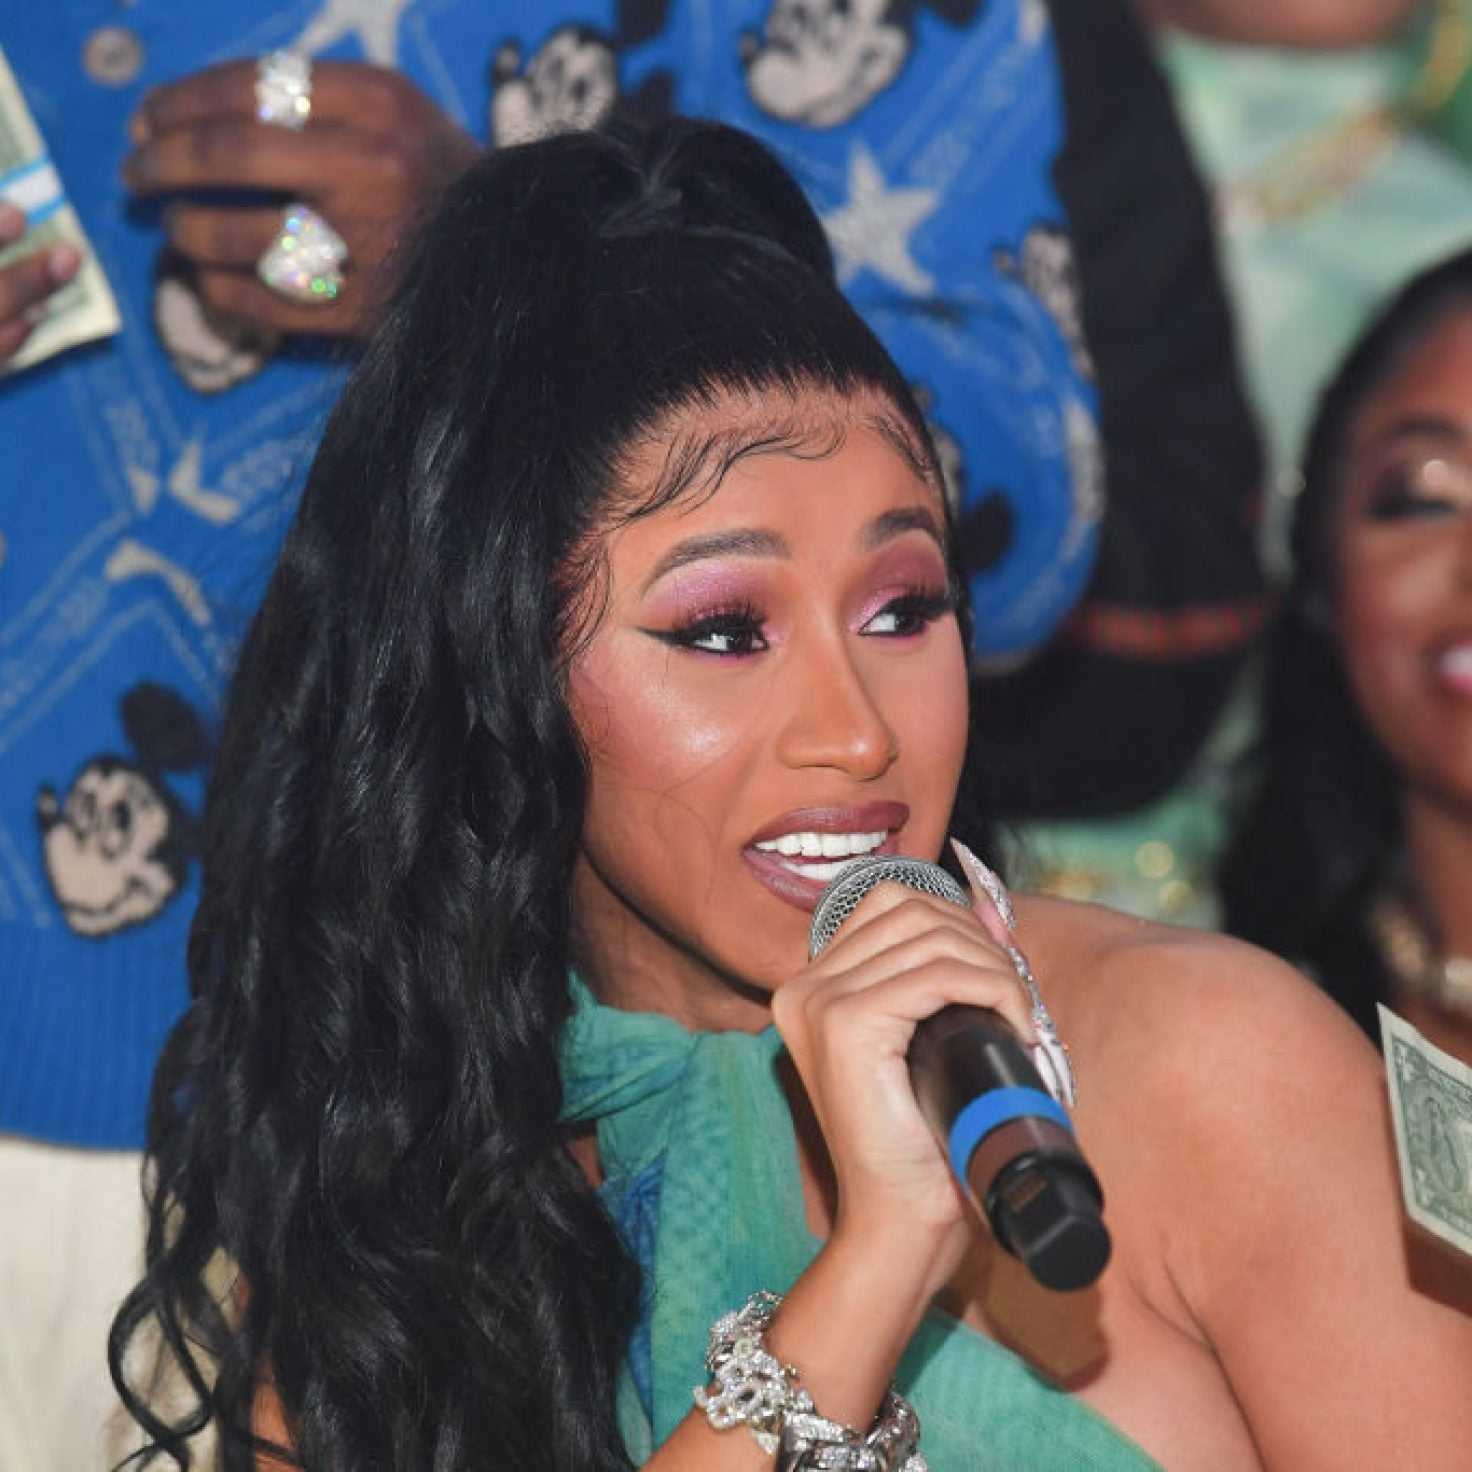 Cardi B Is Tired Of The Xenophobia Against Chinese Citizens: 'Let's All Be One Race'